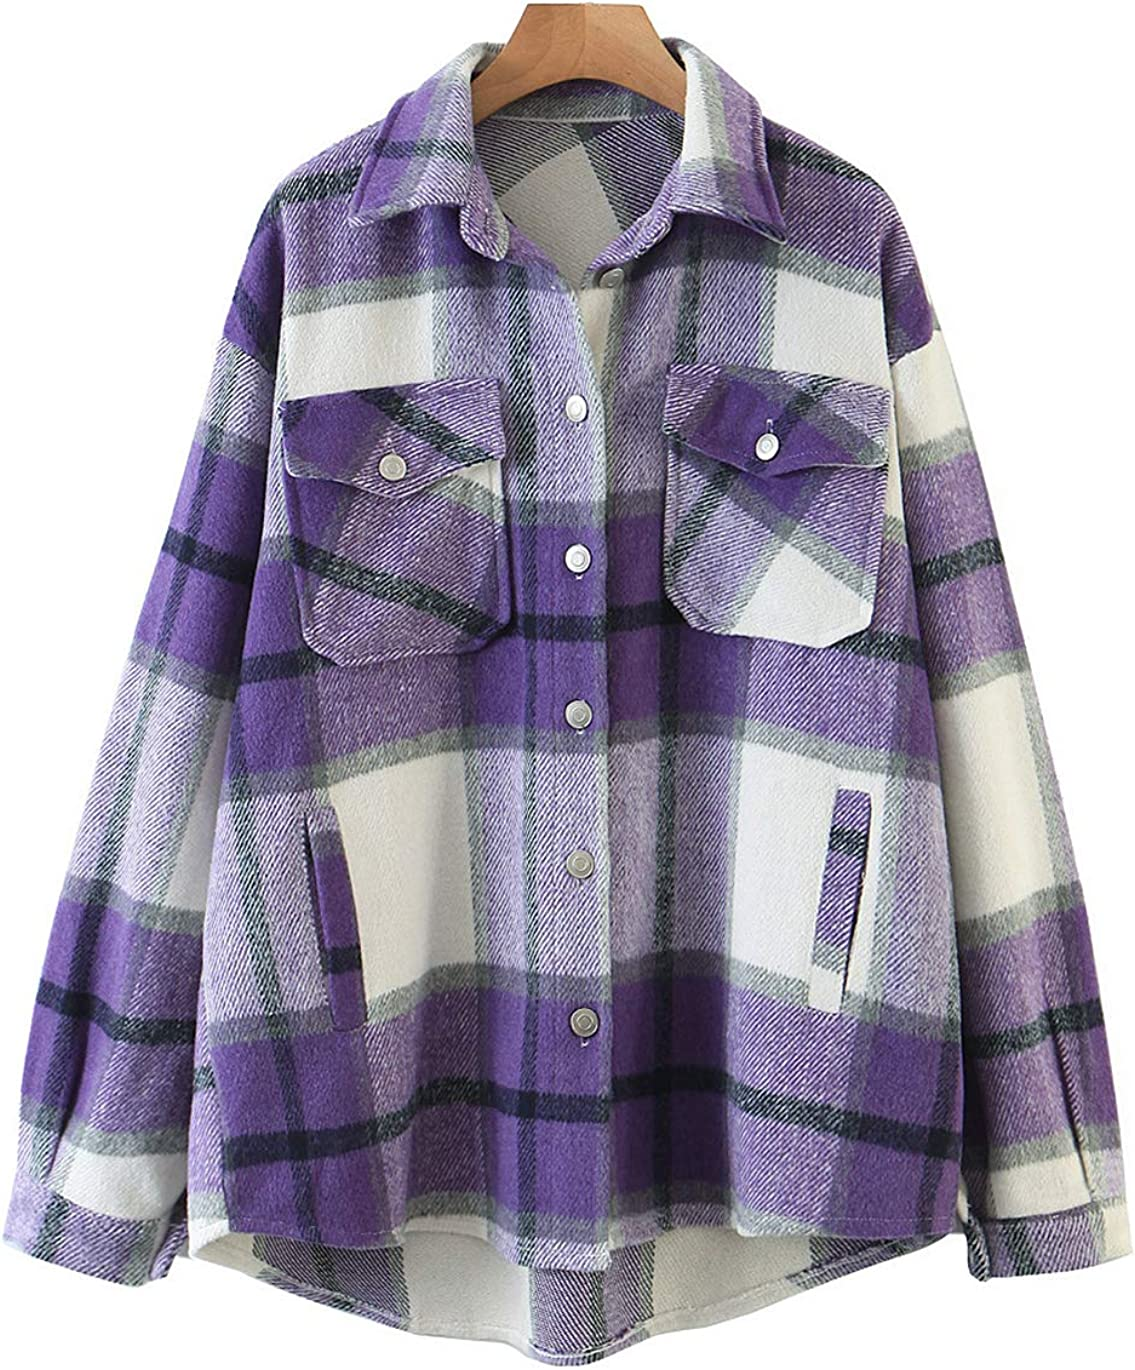 Haellun Women's Wool Blend Plaid Down Shi Flannel Shacket Directly Max 63% OFF managed store Button